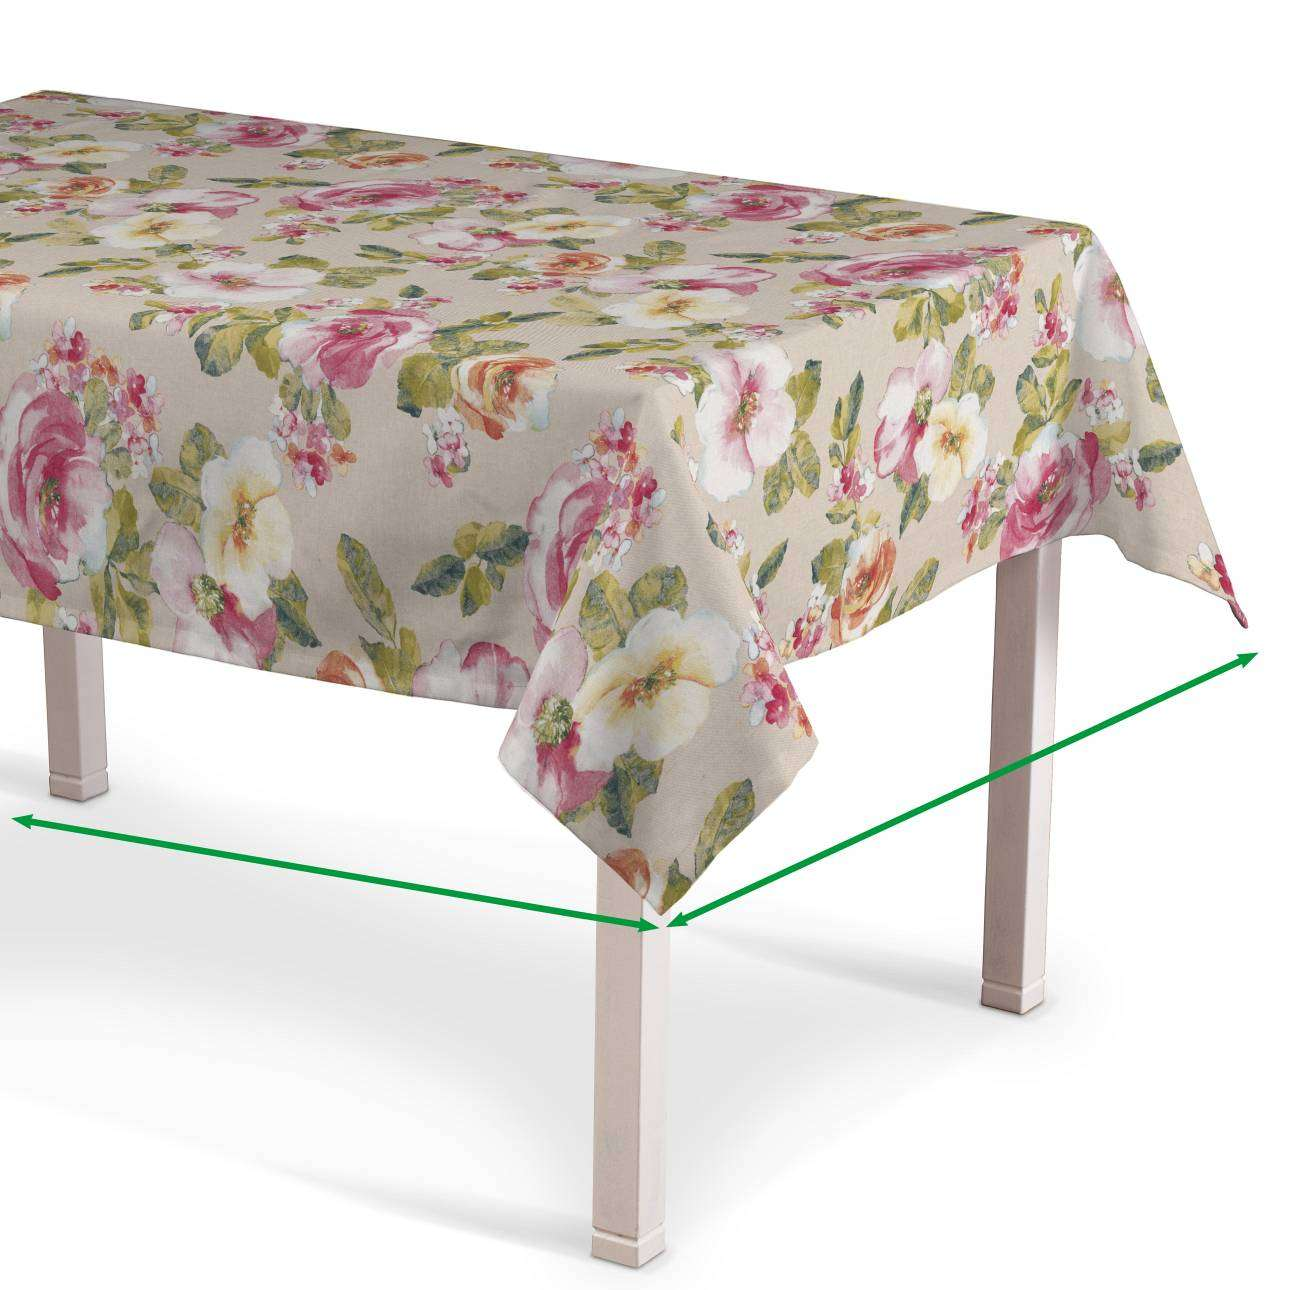 Rectangular tablecloth in collection Londres, fabric: 140-43